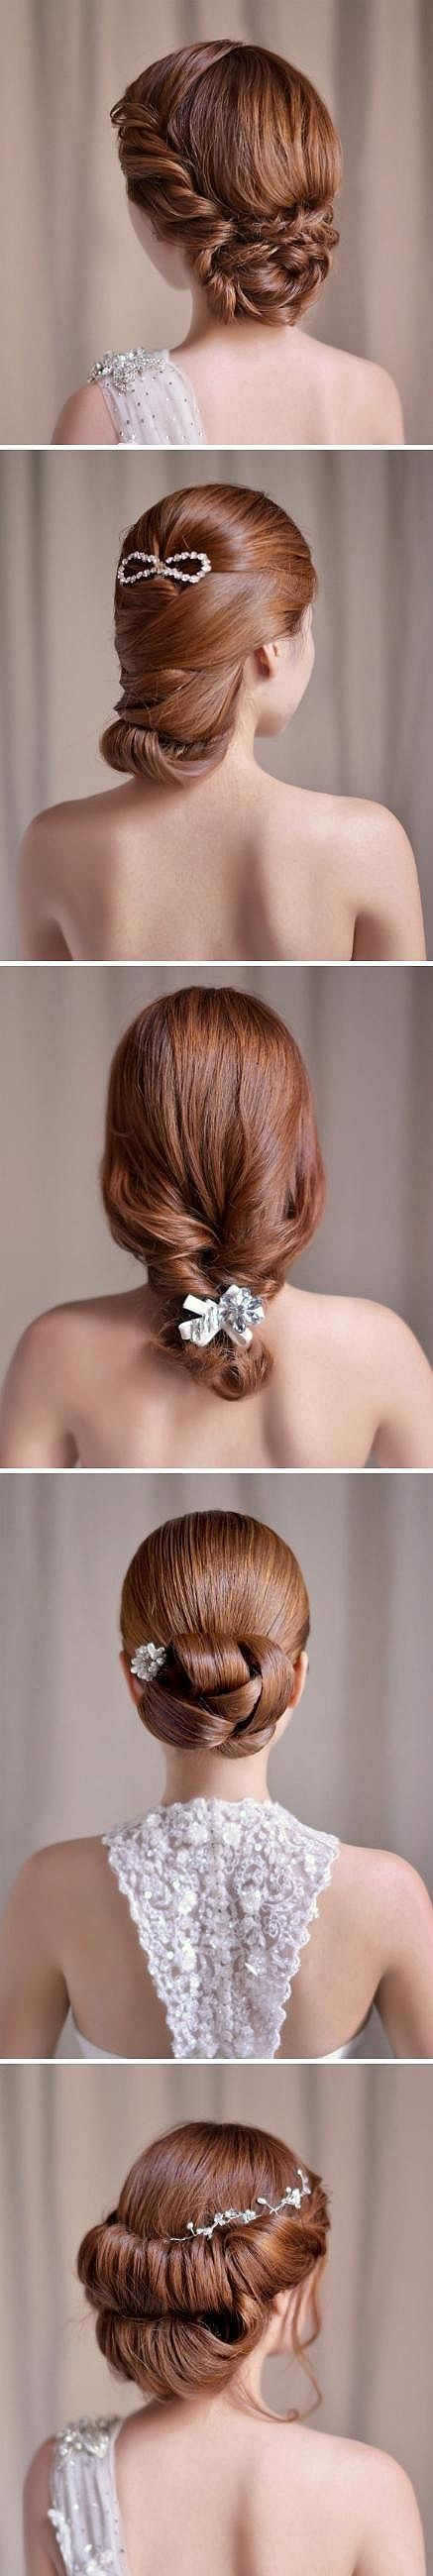 Party Hairstyle Tutorials For Girls In Pakistan With Images